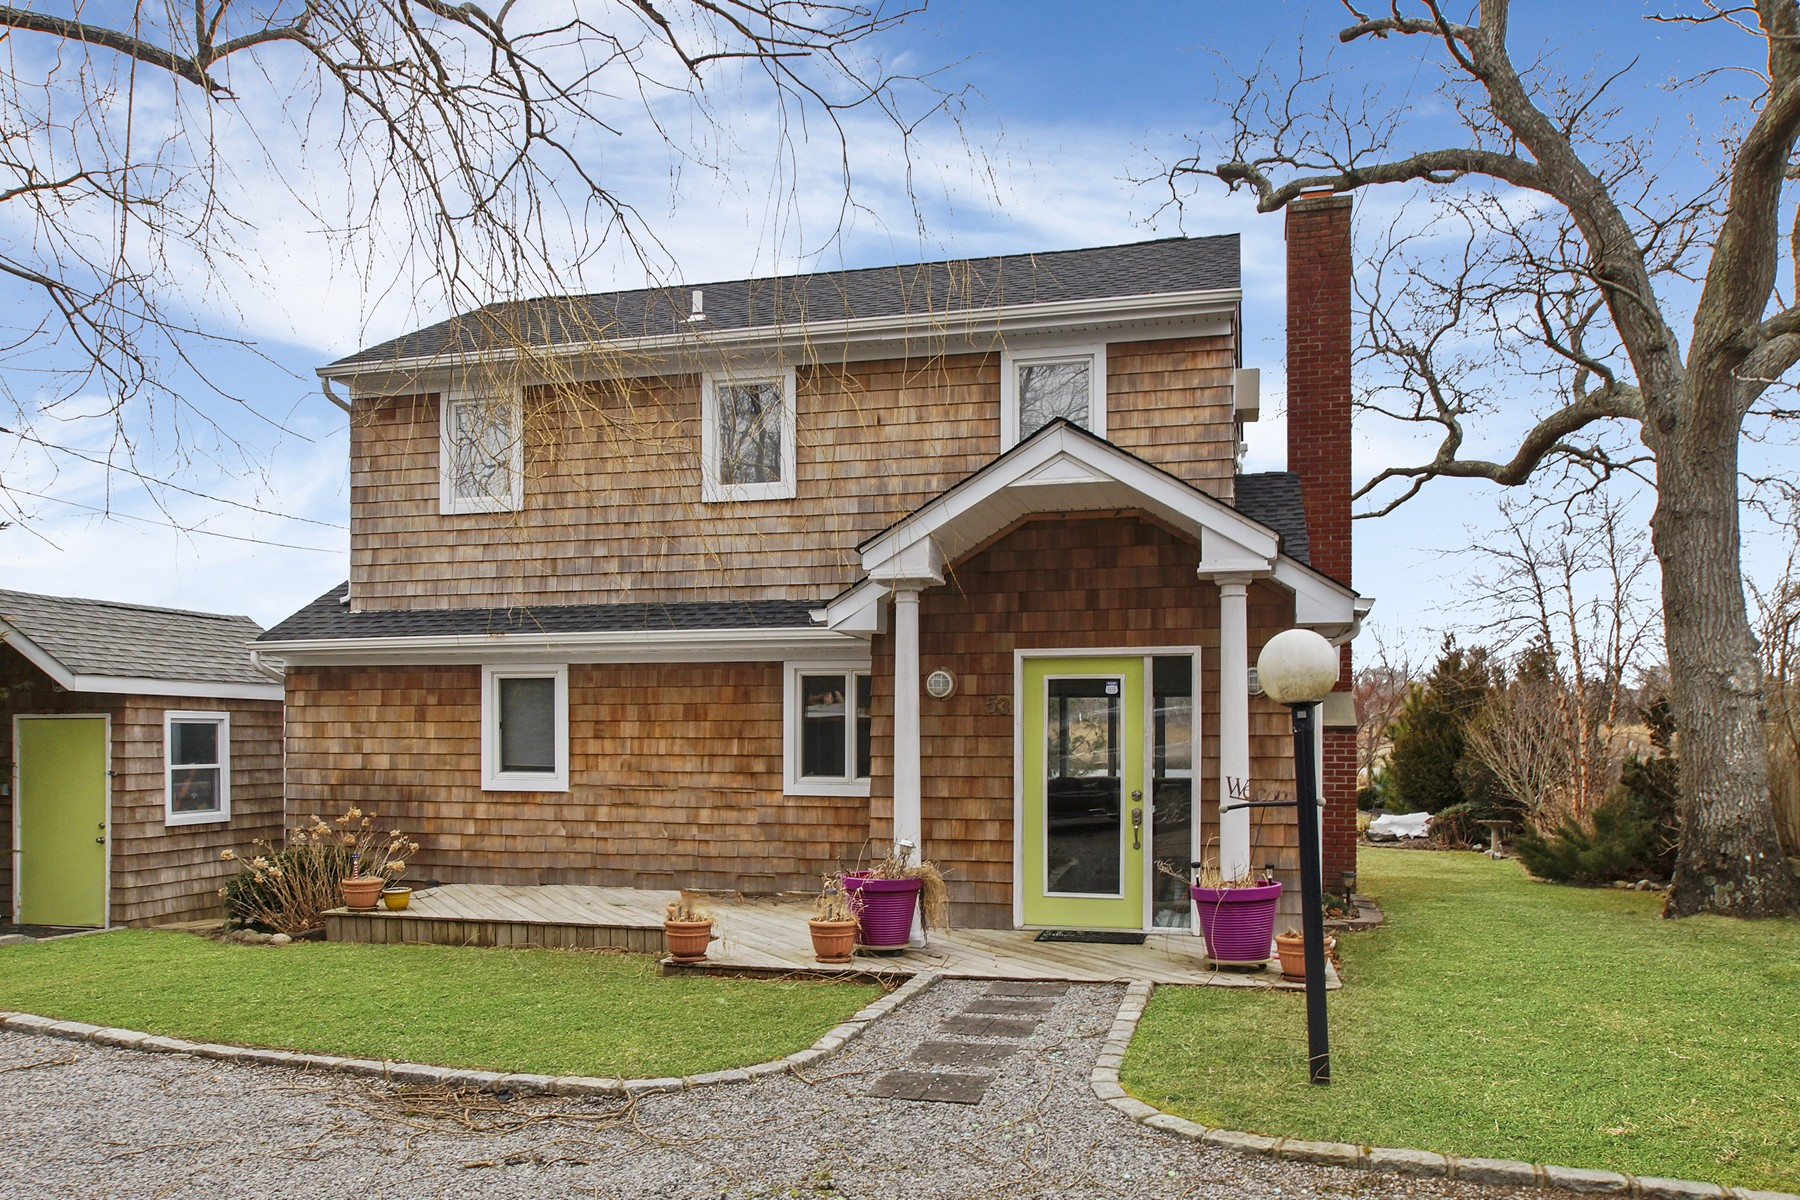 Single Family Homes for Sale at E. Quogue 53 W End Ave East Quogue, New York 11942 United States